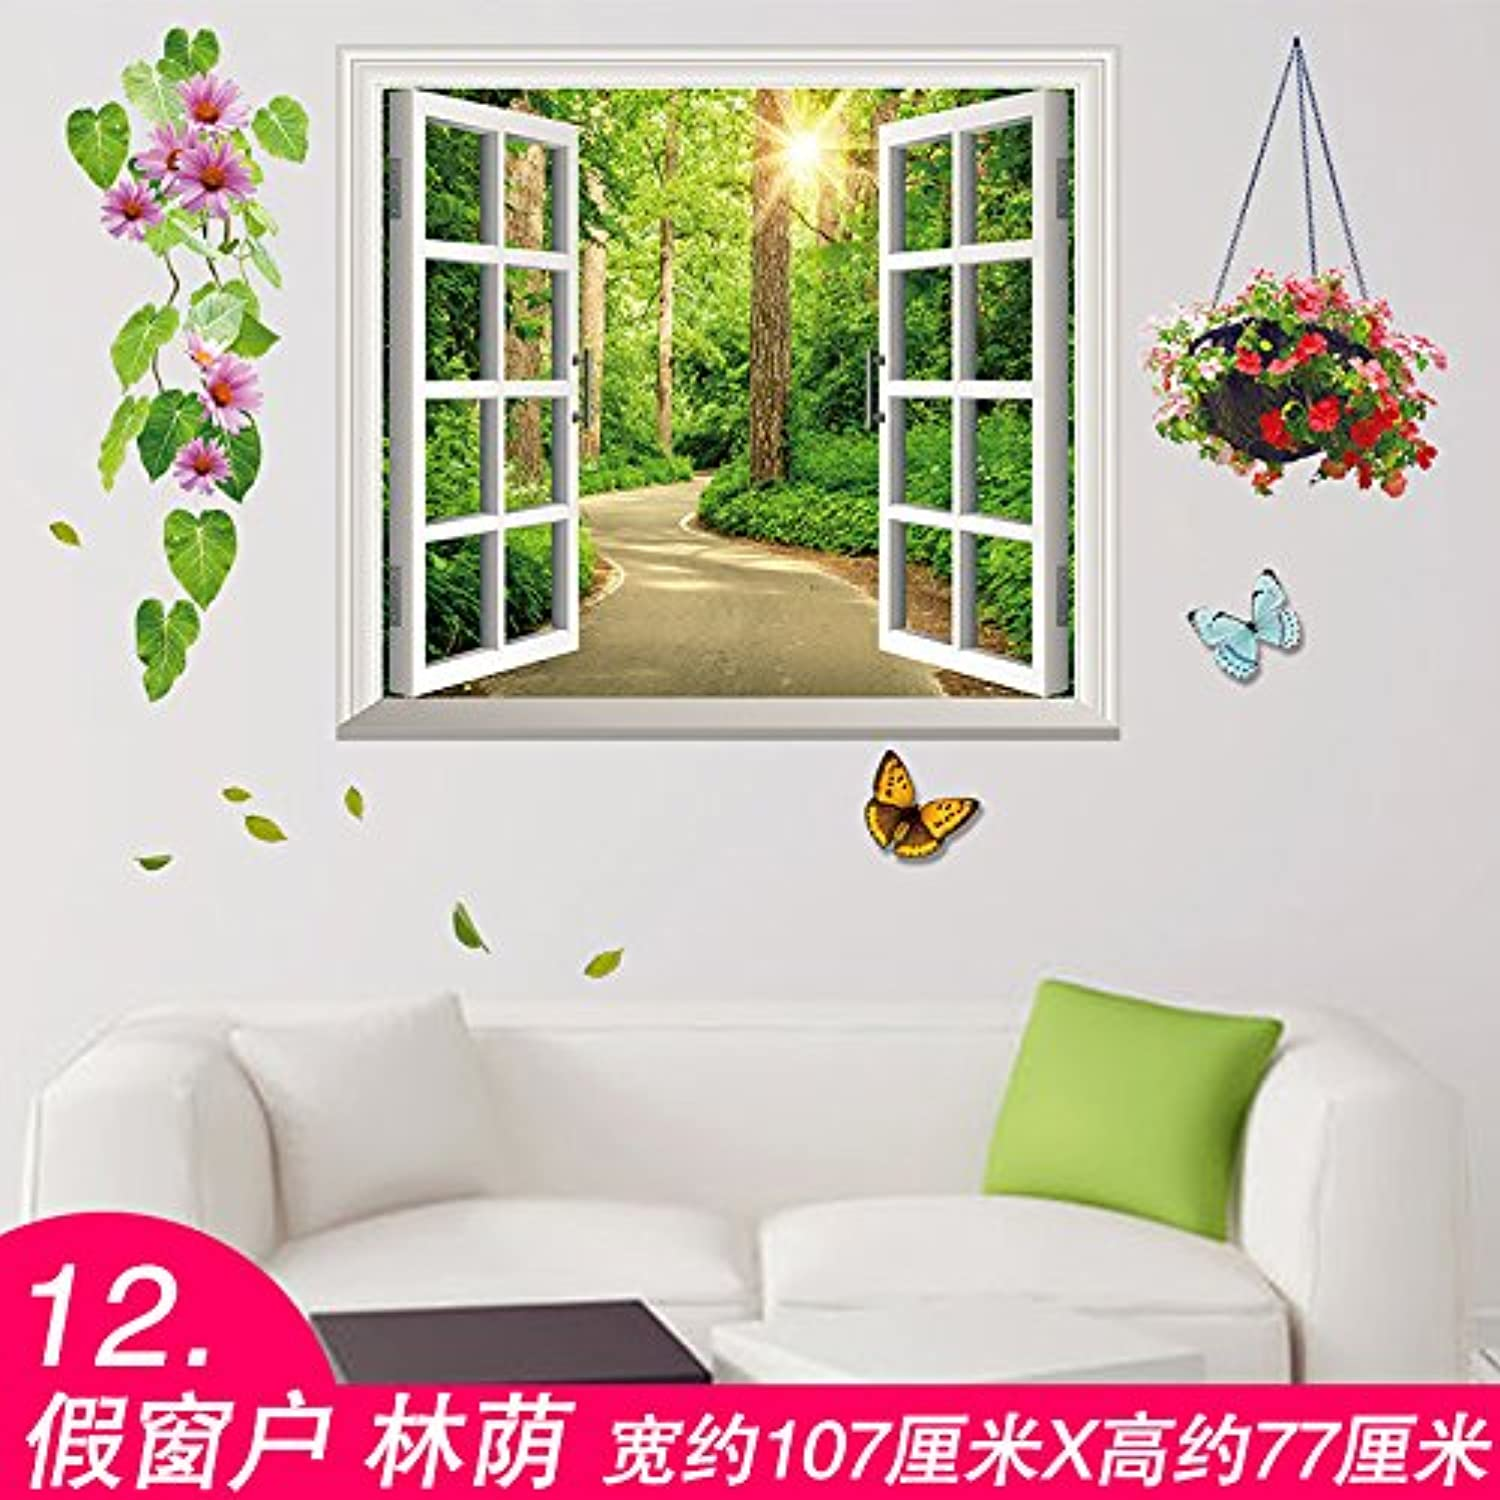 Znzbzt Wall Panel self Adhesive Wallpaper Wall Decor Stickers Bearing Creative Garden Wallpaper Posters, Window